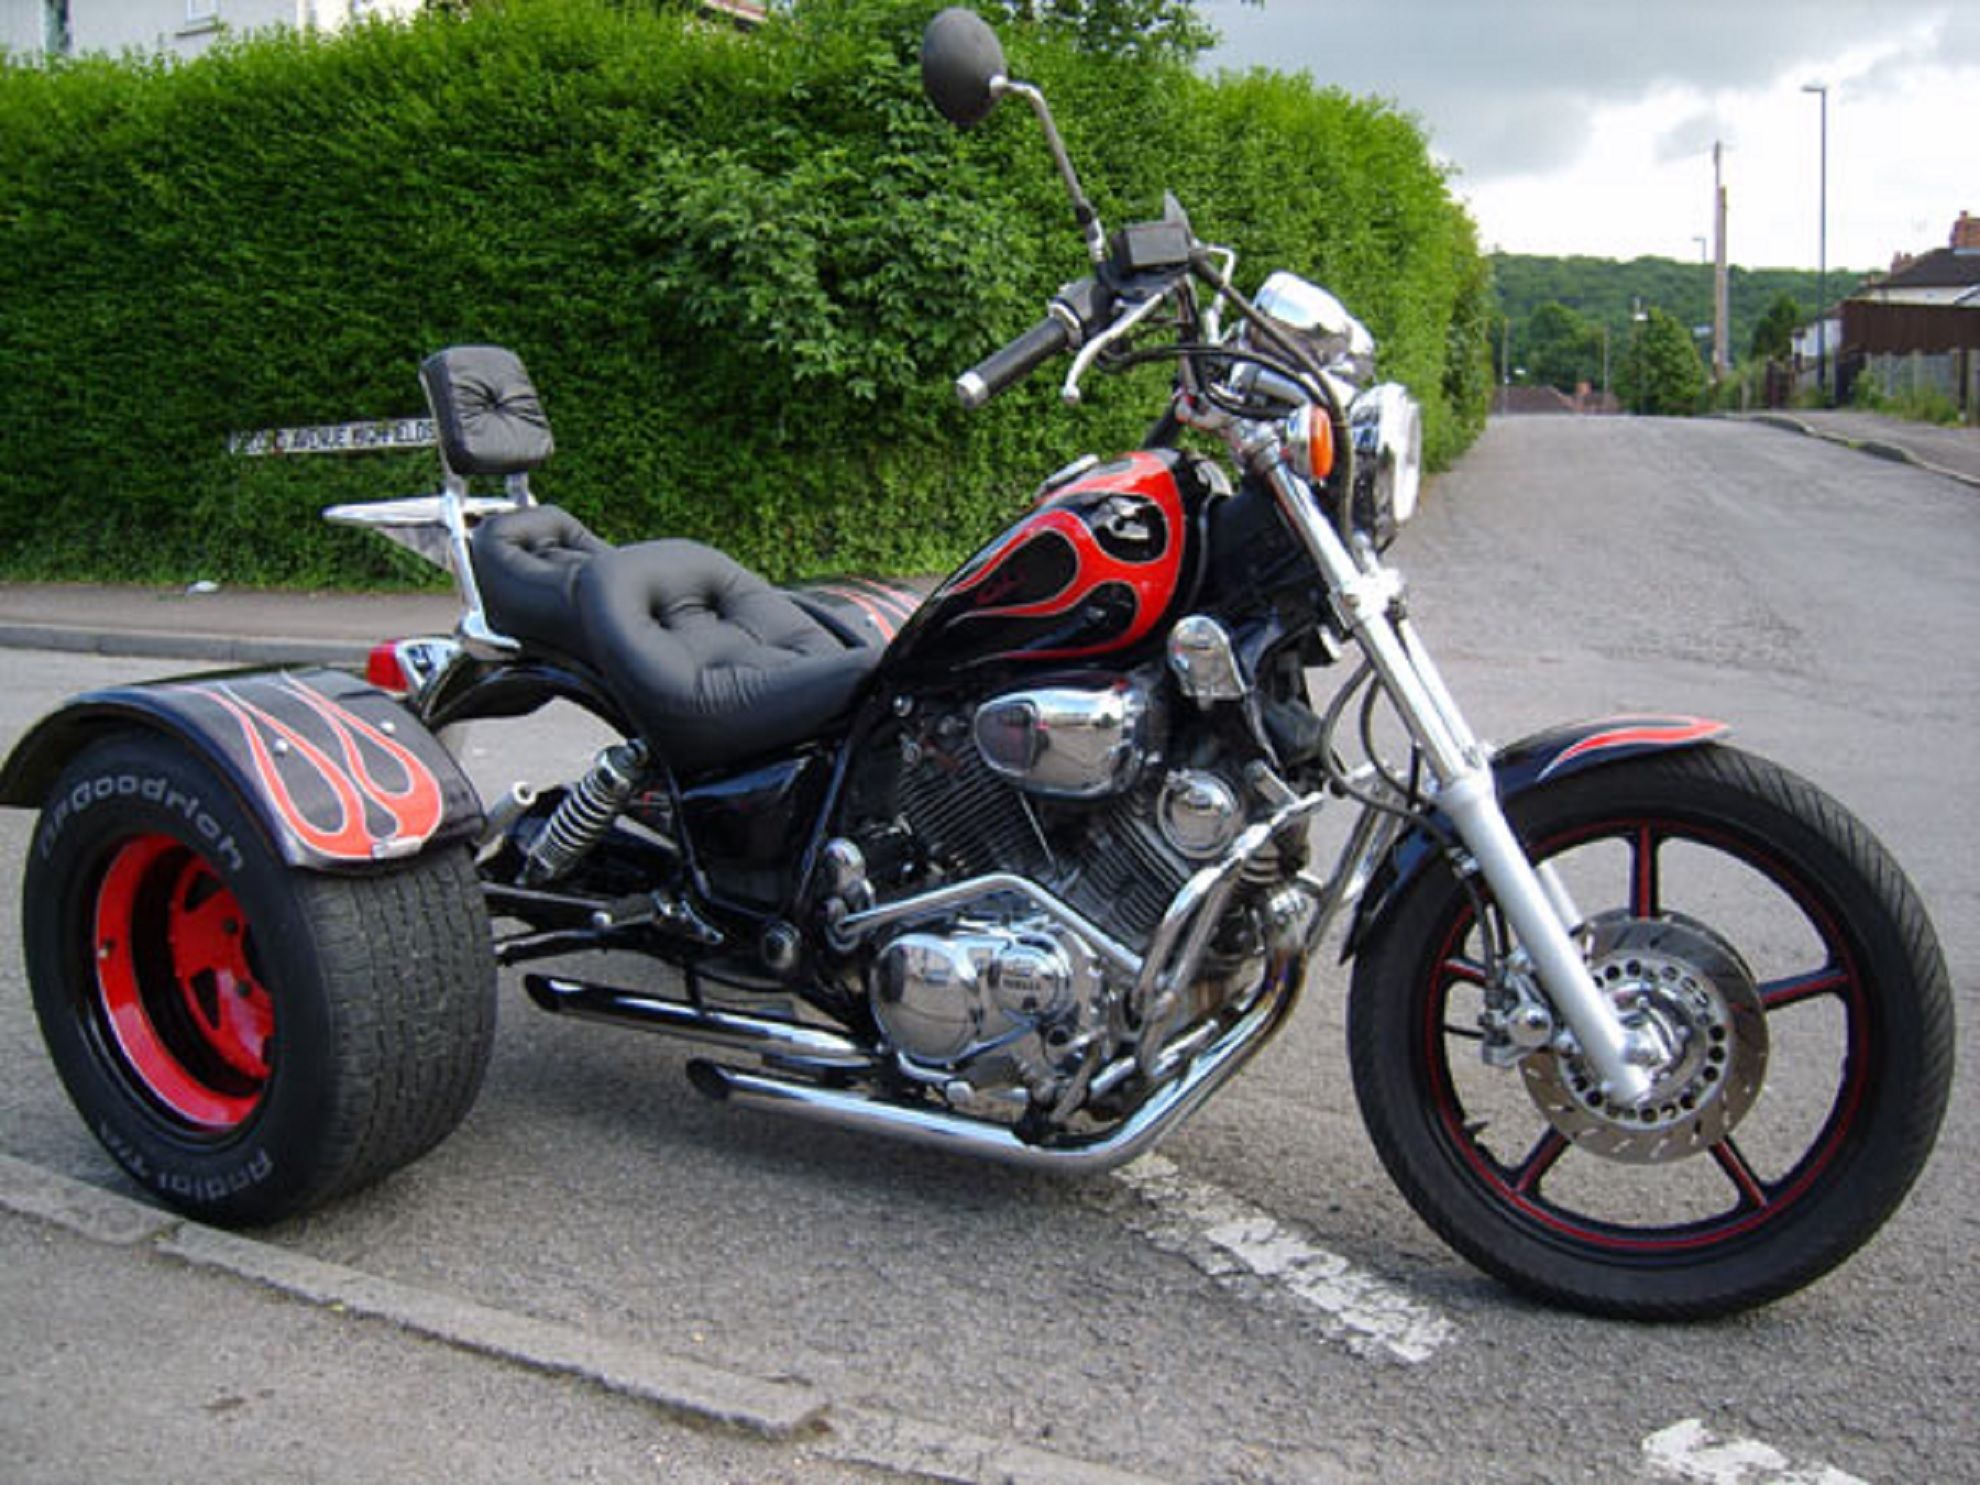 Carters custom motorcycles contact lee carter sales pete neal unit 5